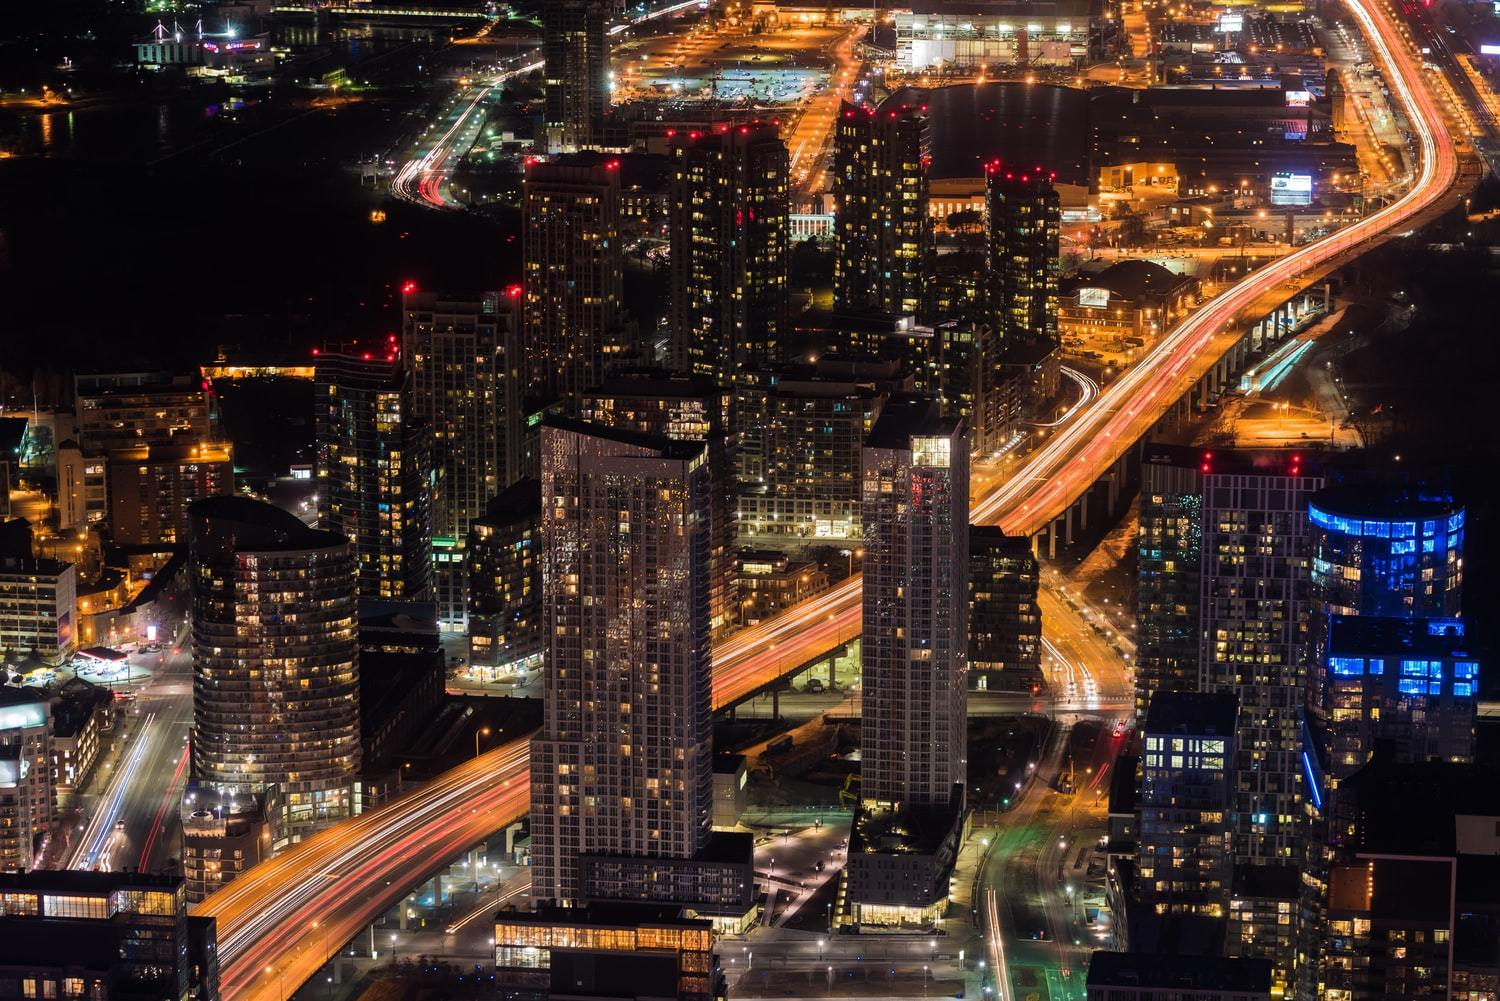 The Most Sleep-Deprived Cities in America